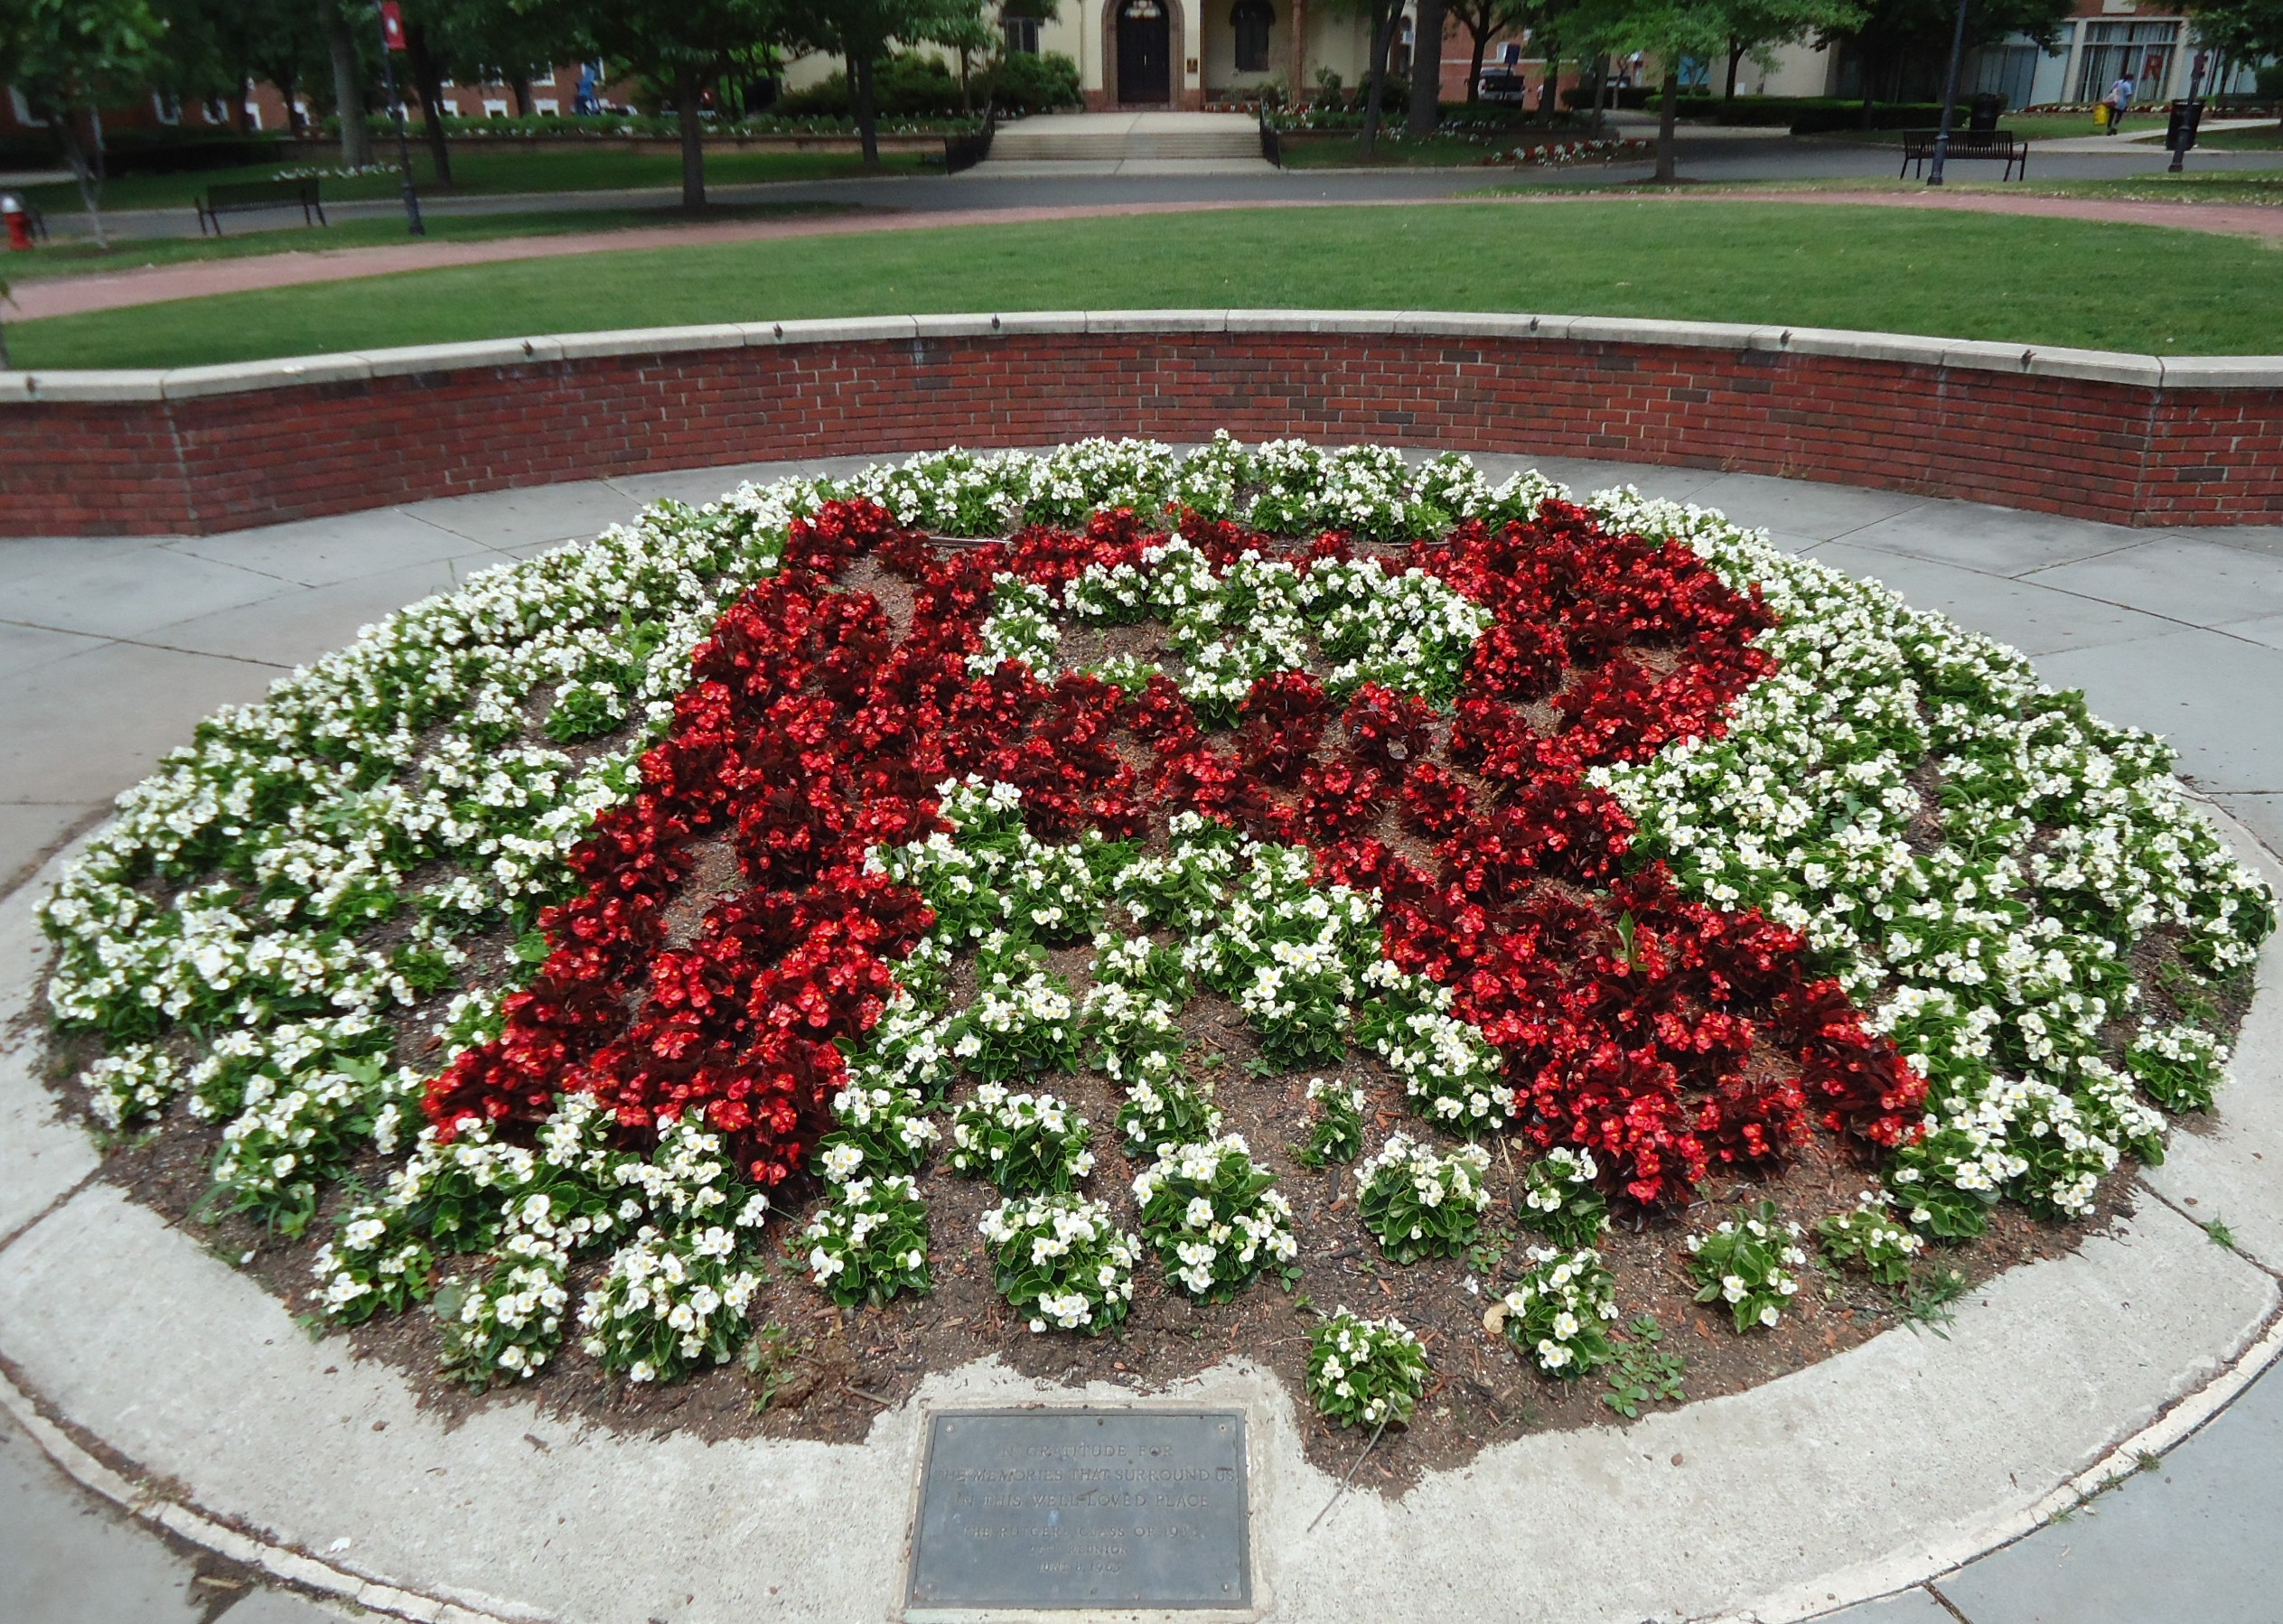 Fileuu rutgers university flowers form a giant r college avenue fileuu rutgers university flowers form a giant r college avenue campusg altavistaventures Choice Image